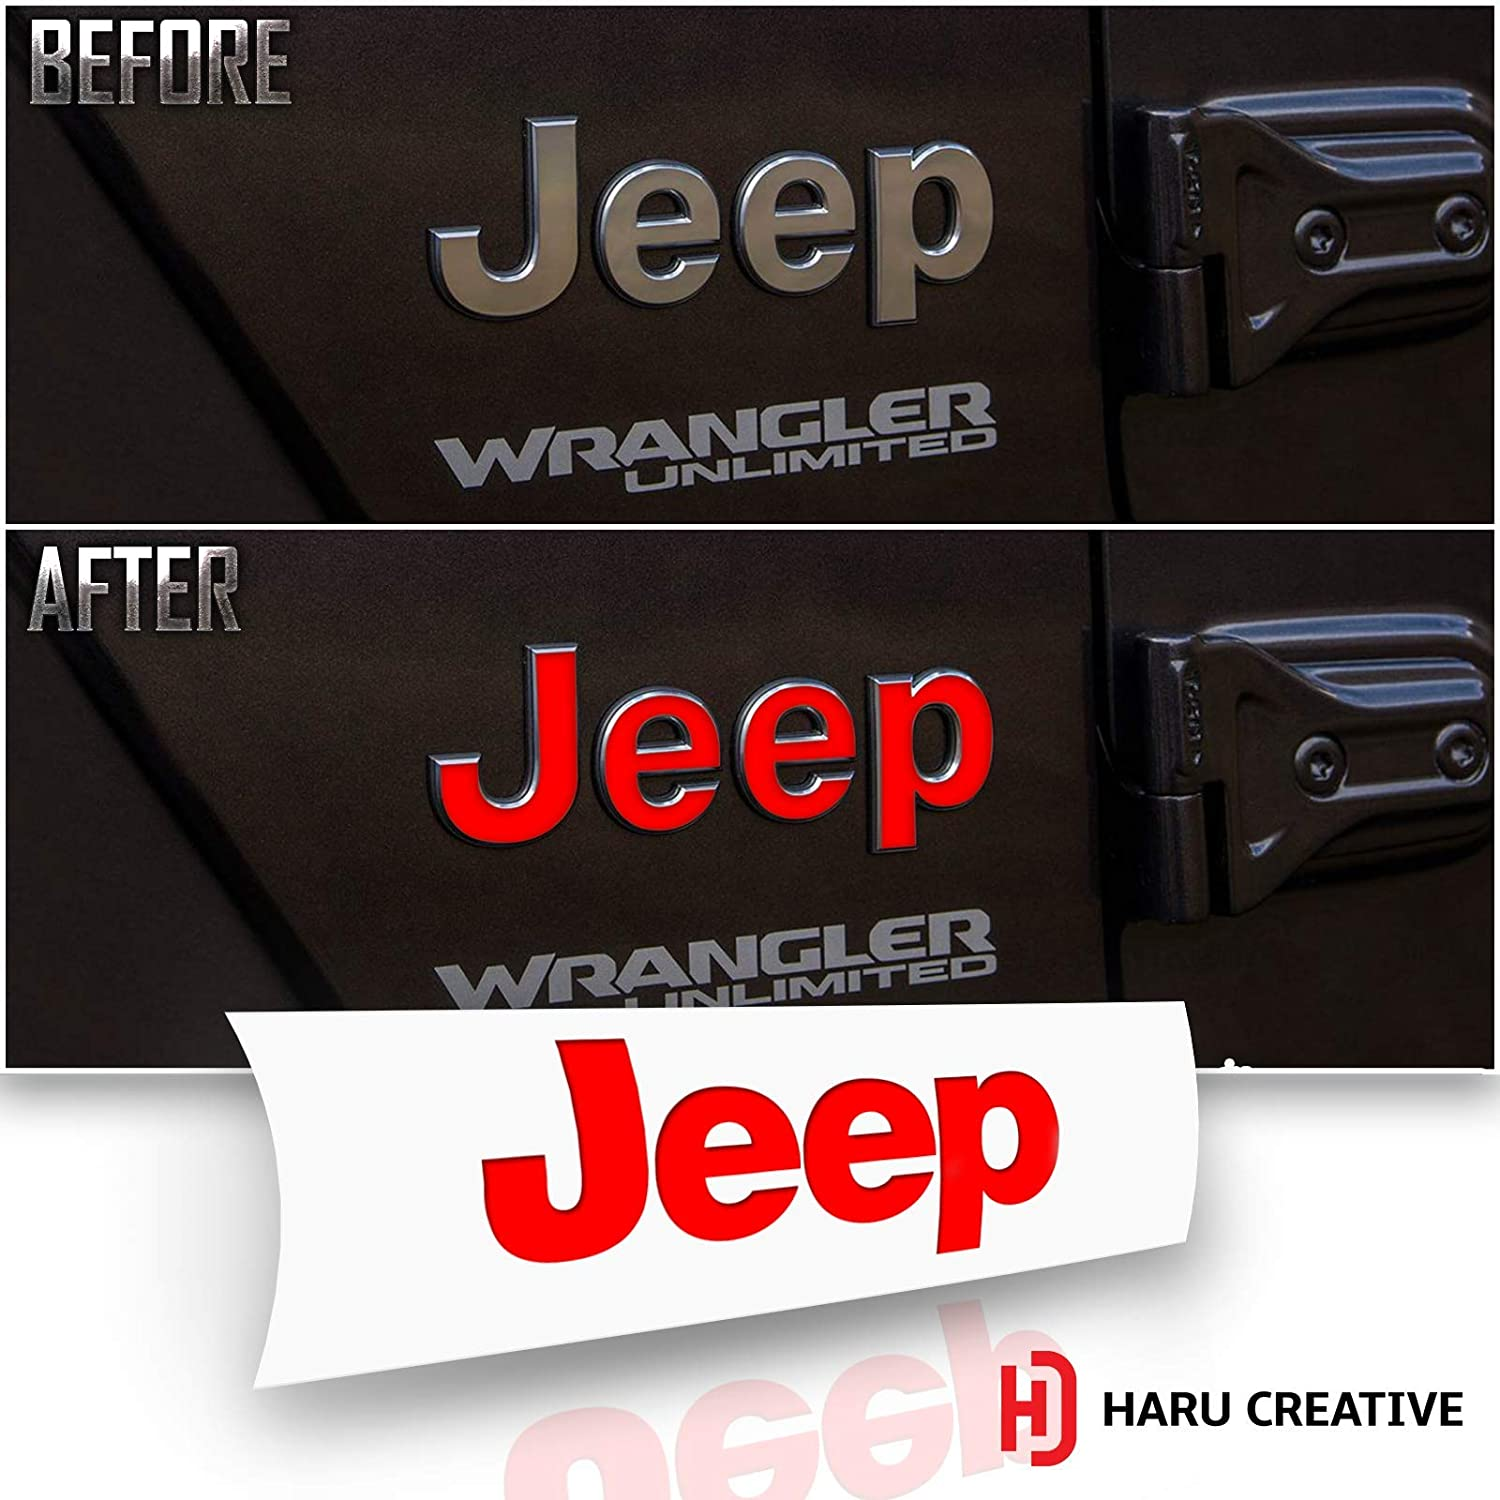 Chrome Red Fender Side Door Emblem Letter Overlay Vinyl Decal Sticker Compatible with and Fits Jeep Wrangler JL 2018 Haru Creative